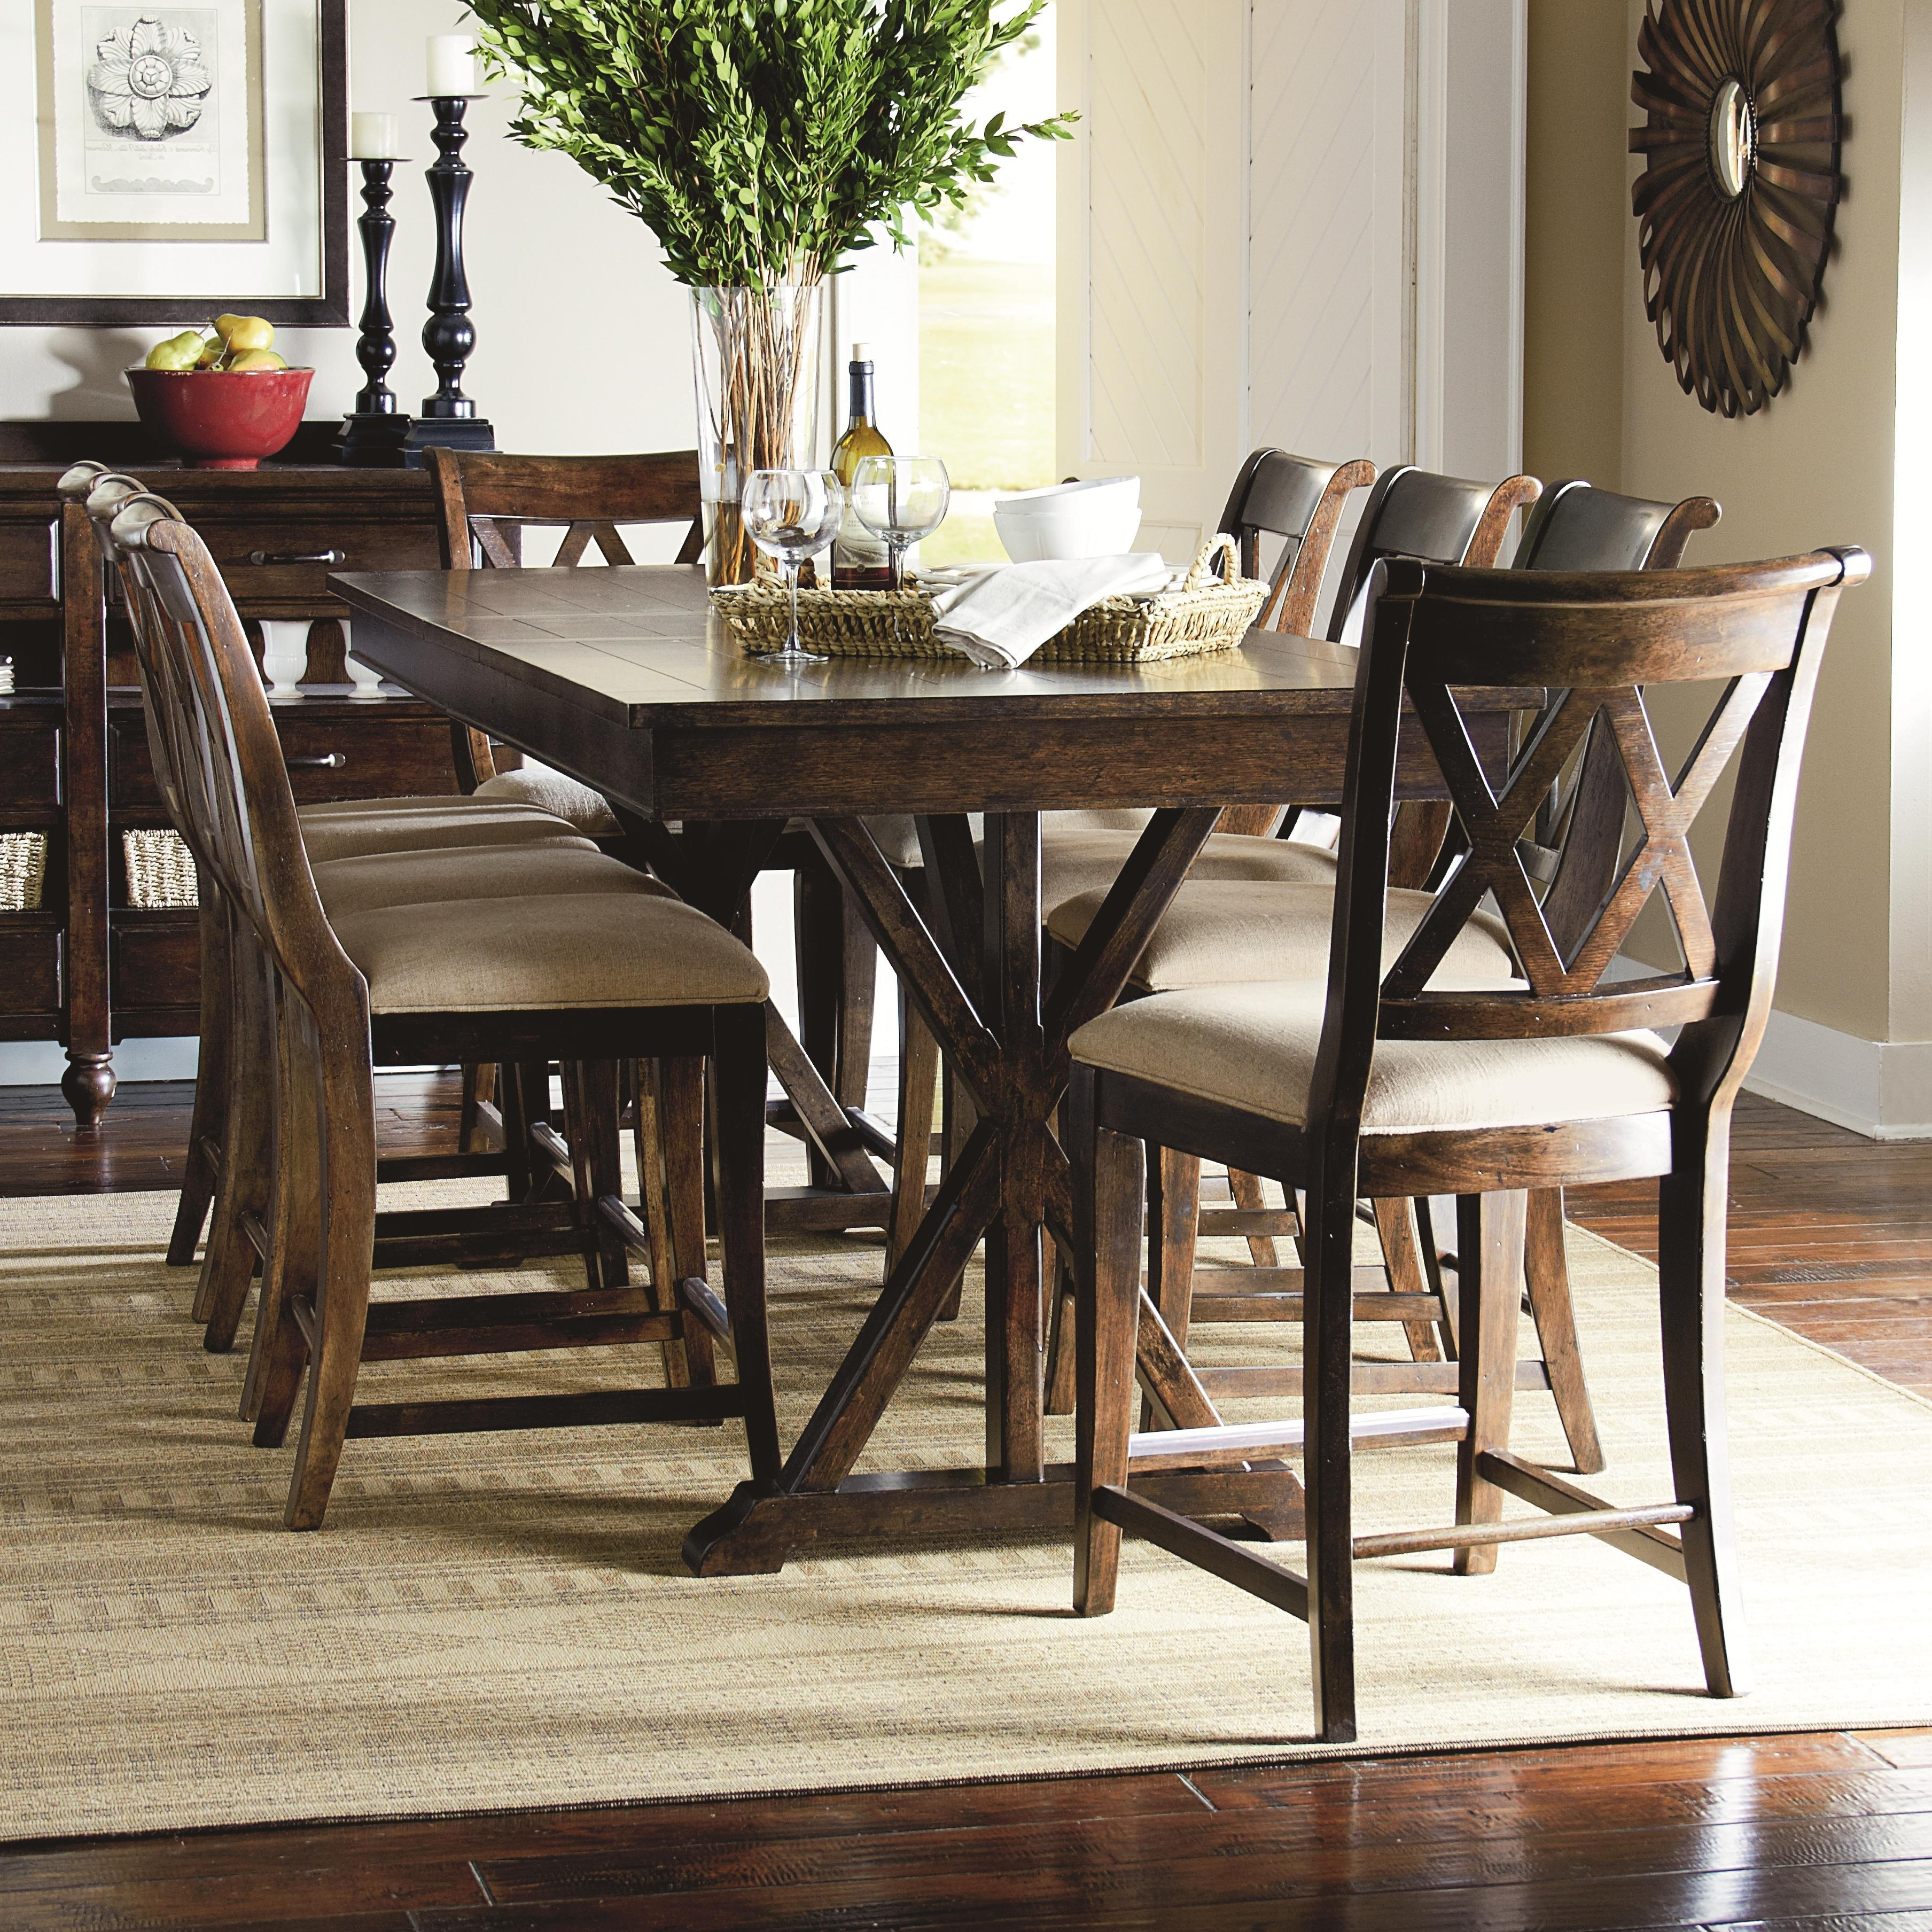 Chapleau Ii 9 Piece Extension Dining Tables With Side Chairs Pertaining To Widely Used Cheery Caira Piece Extension Set Back Chairs Caira Piece Extension (View 18 of 25)